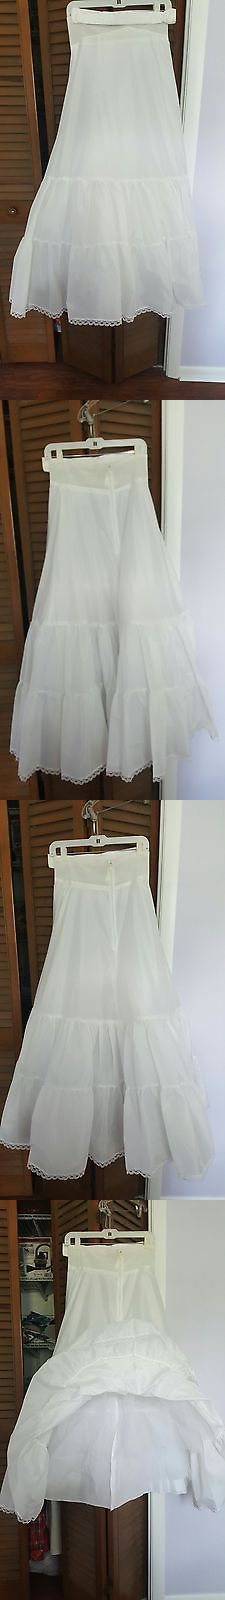 Slips Petticoats and Hoops 98745: David S Bridal Wedding Dress Slip Size 14 + Bonus -> BUY IT NOW ONLY: $37.2 on eBay!